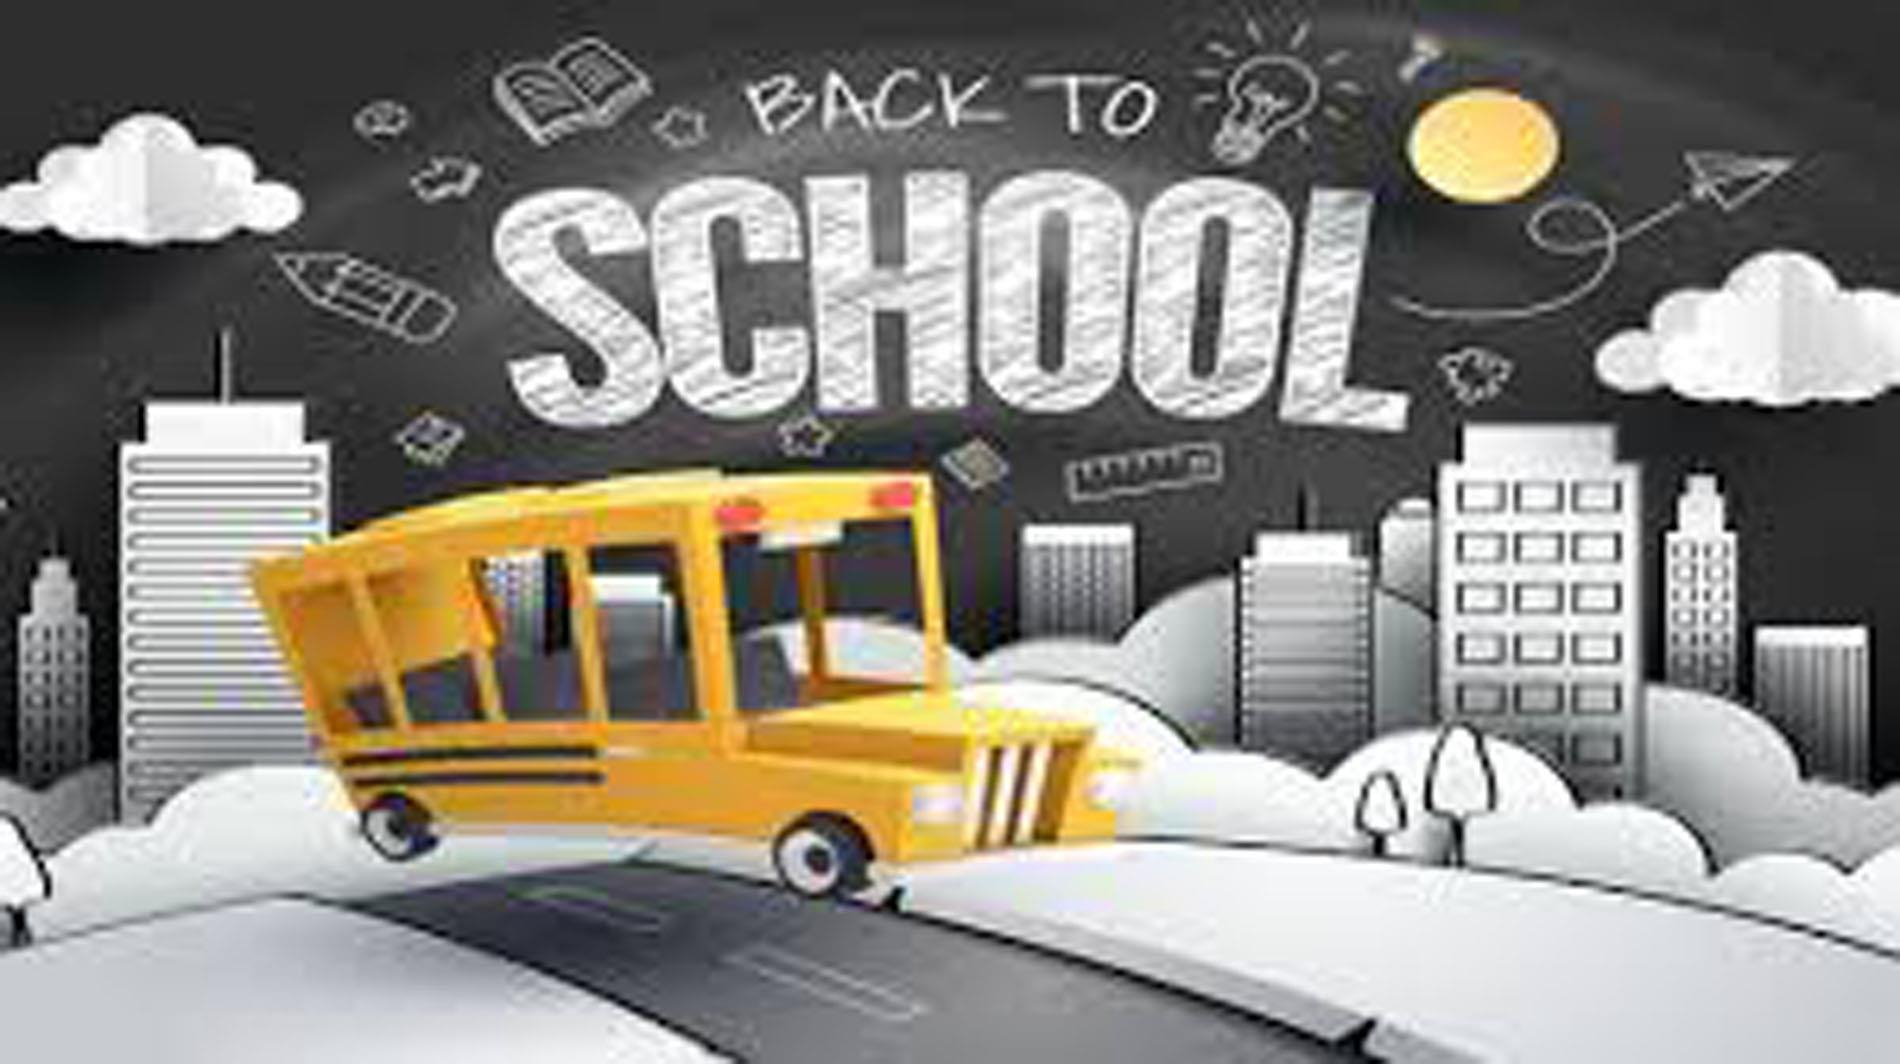 Home - Pine Bluff School District Pertaining To Pine Bluff School District Calendar 2021